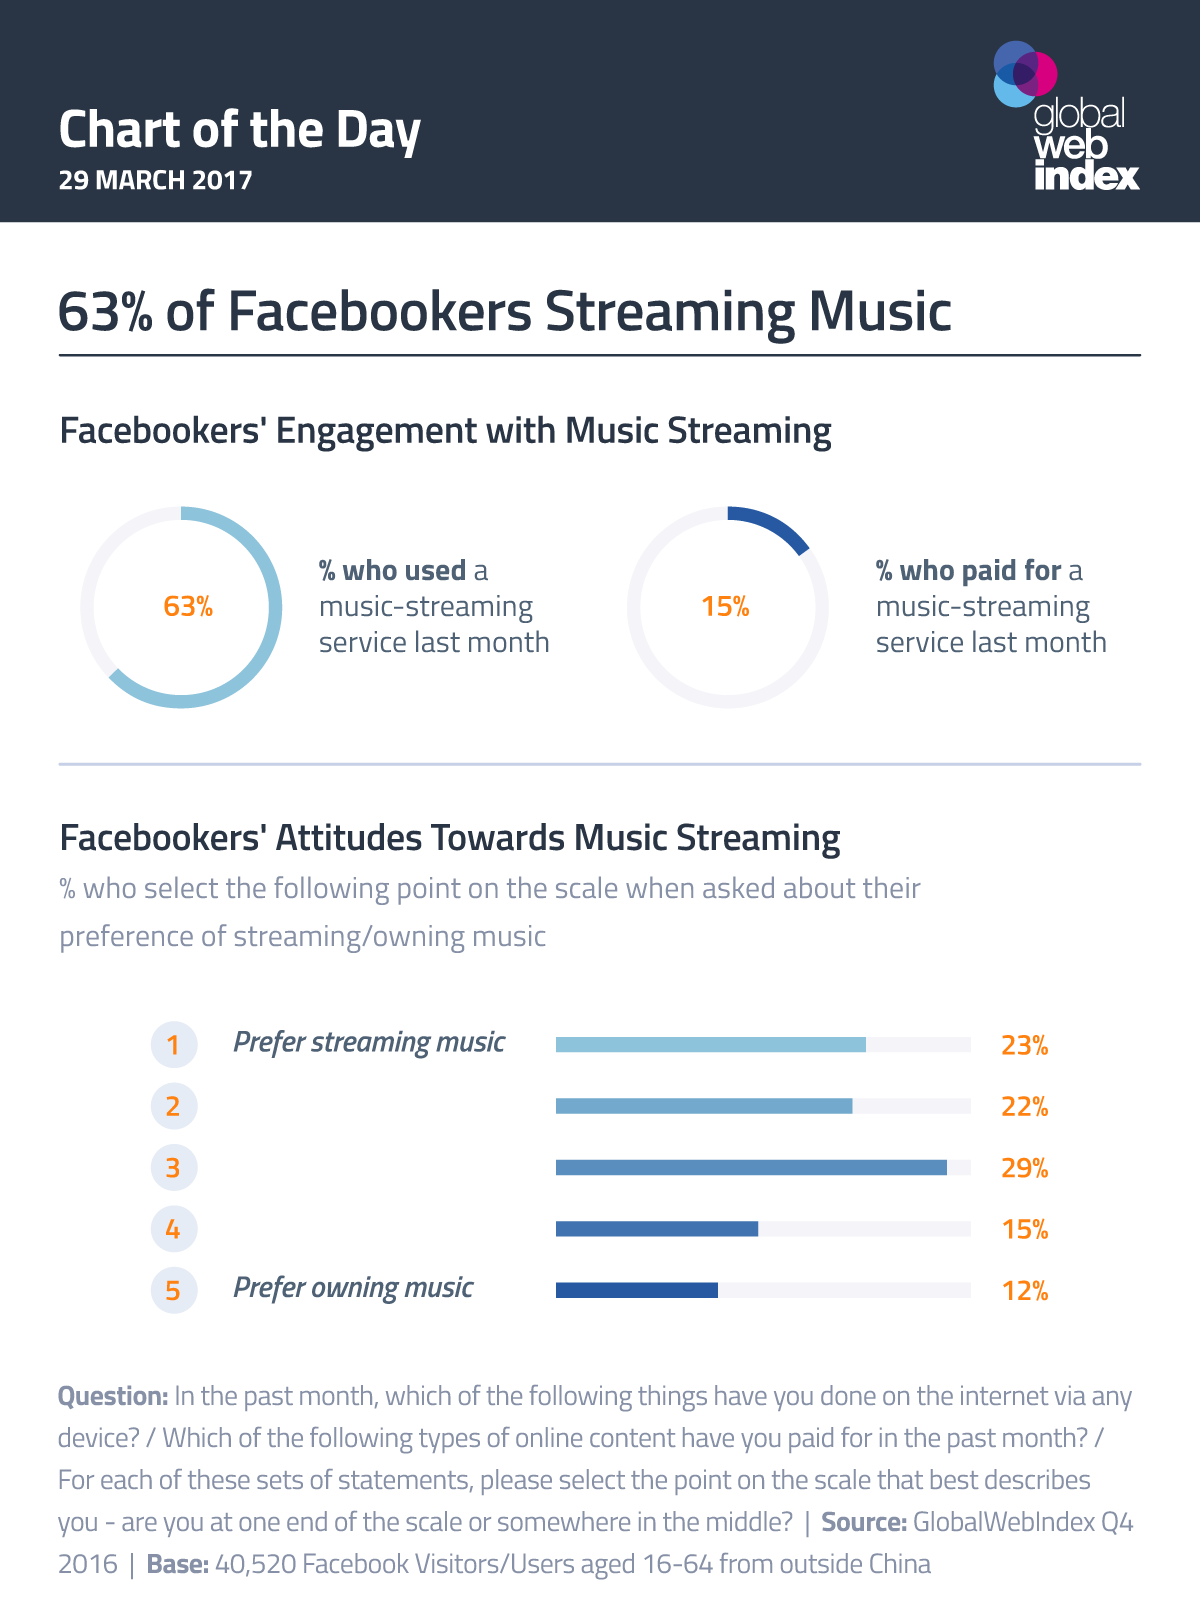 63% of Facebookers Streaming Music